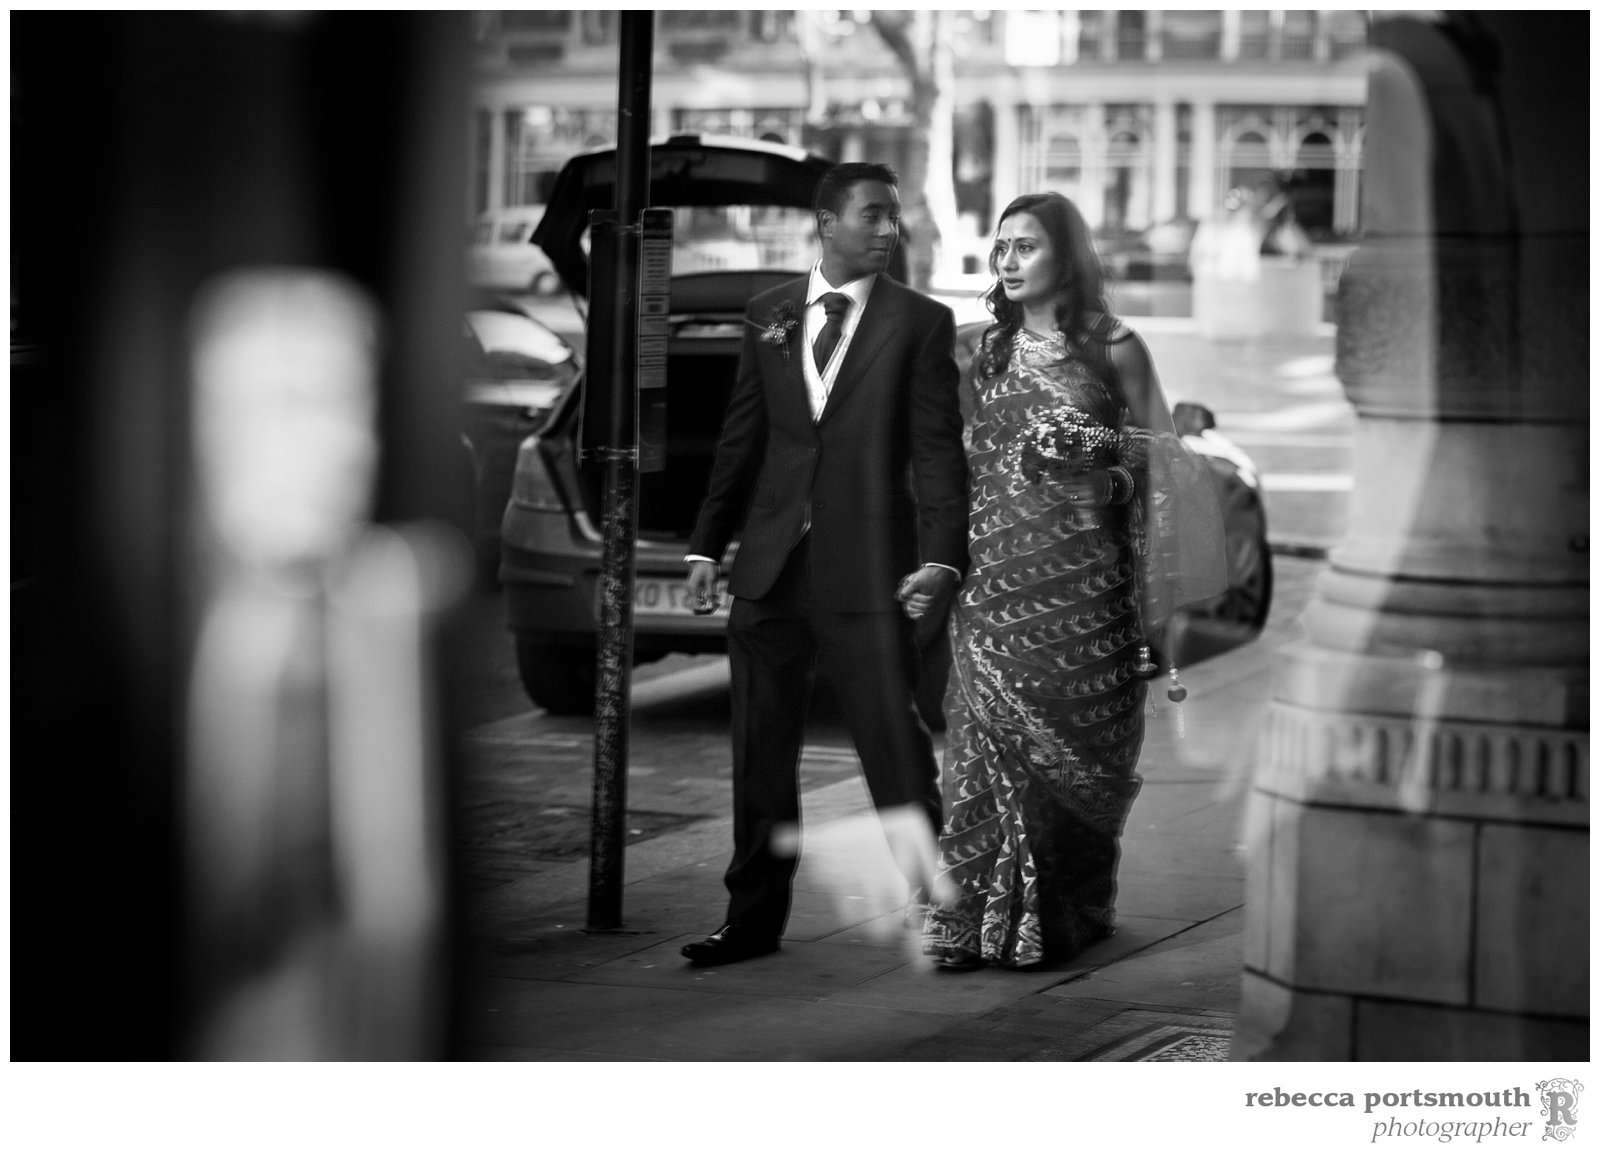 The reflection of a bride and groom as they stroll through Mayfair's Mount Street to their wedding breakfast nearby.